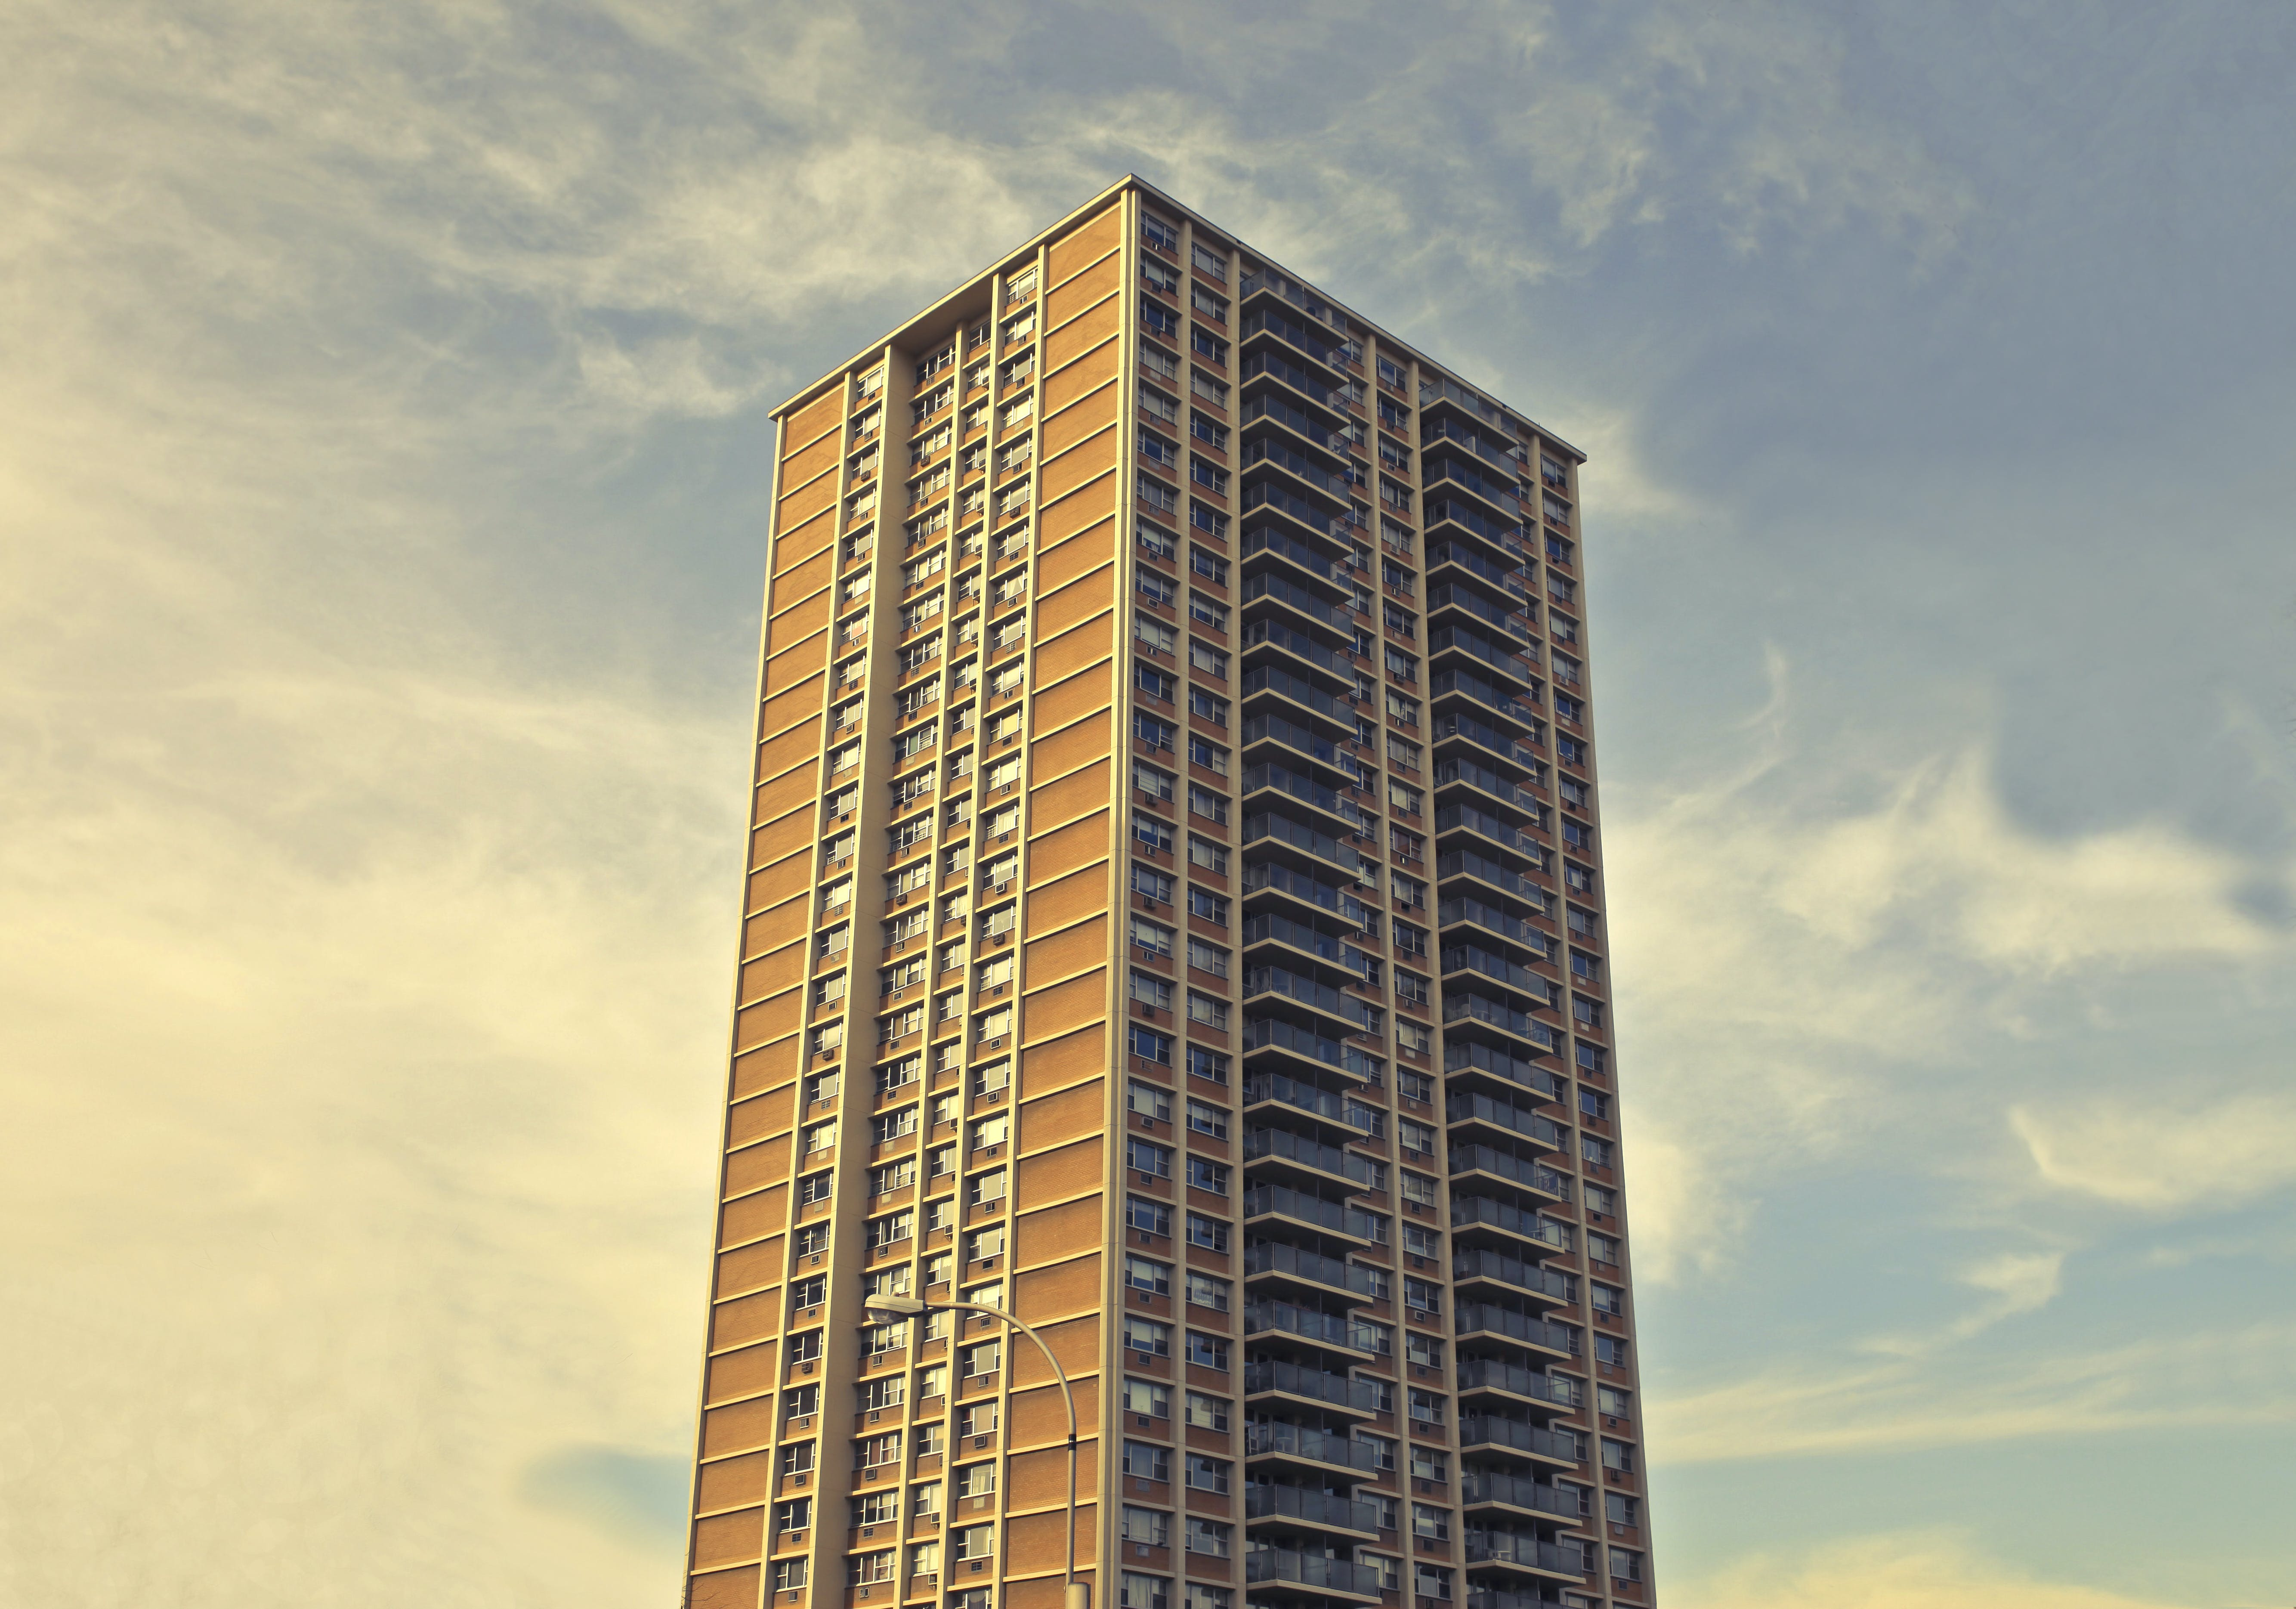 Photo of a High Rise Building